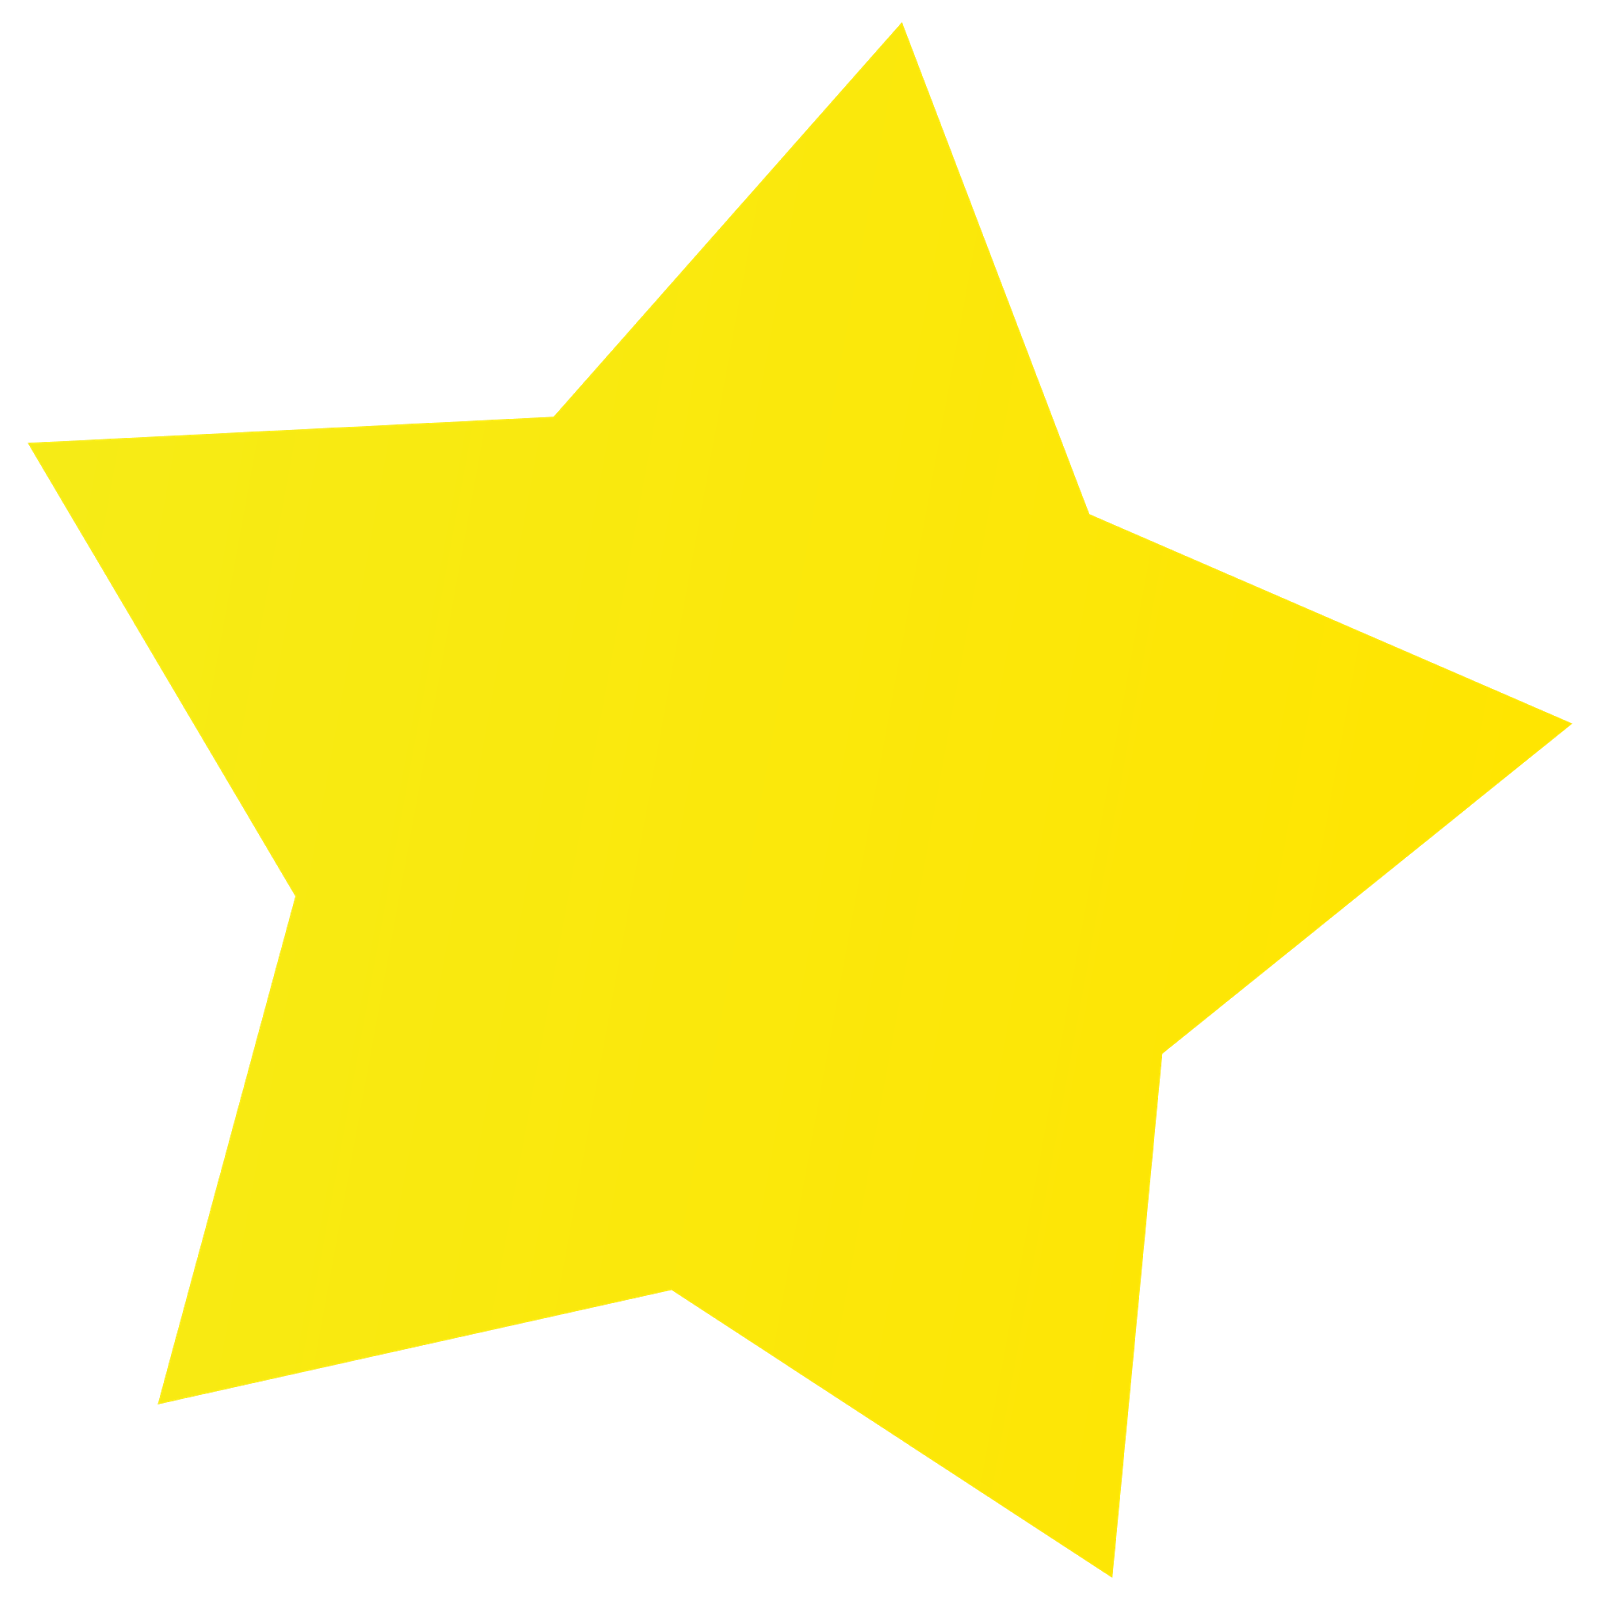 clipart royalty free download Image of Yellow Stars Clipart